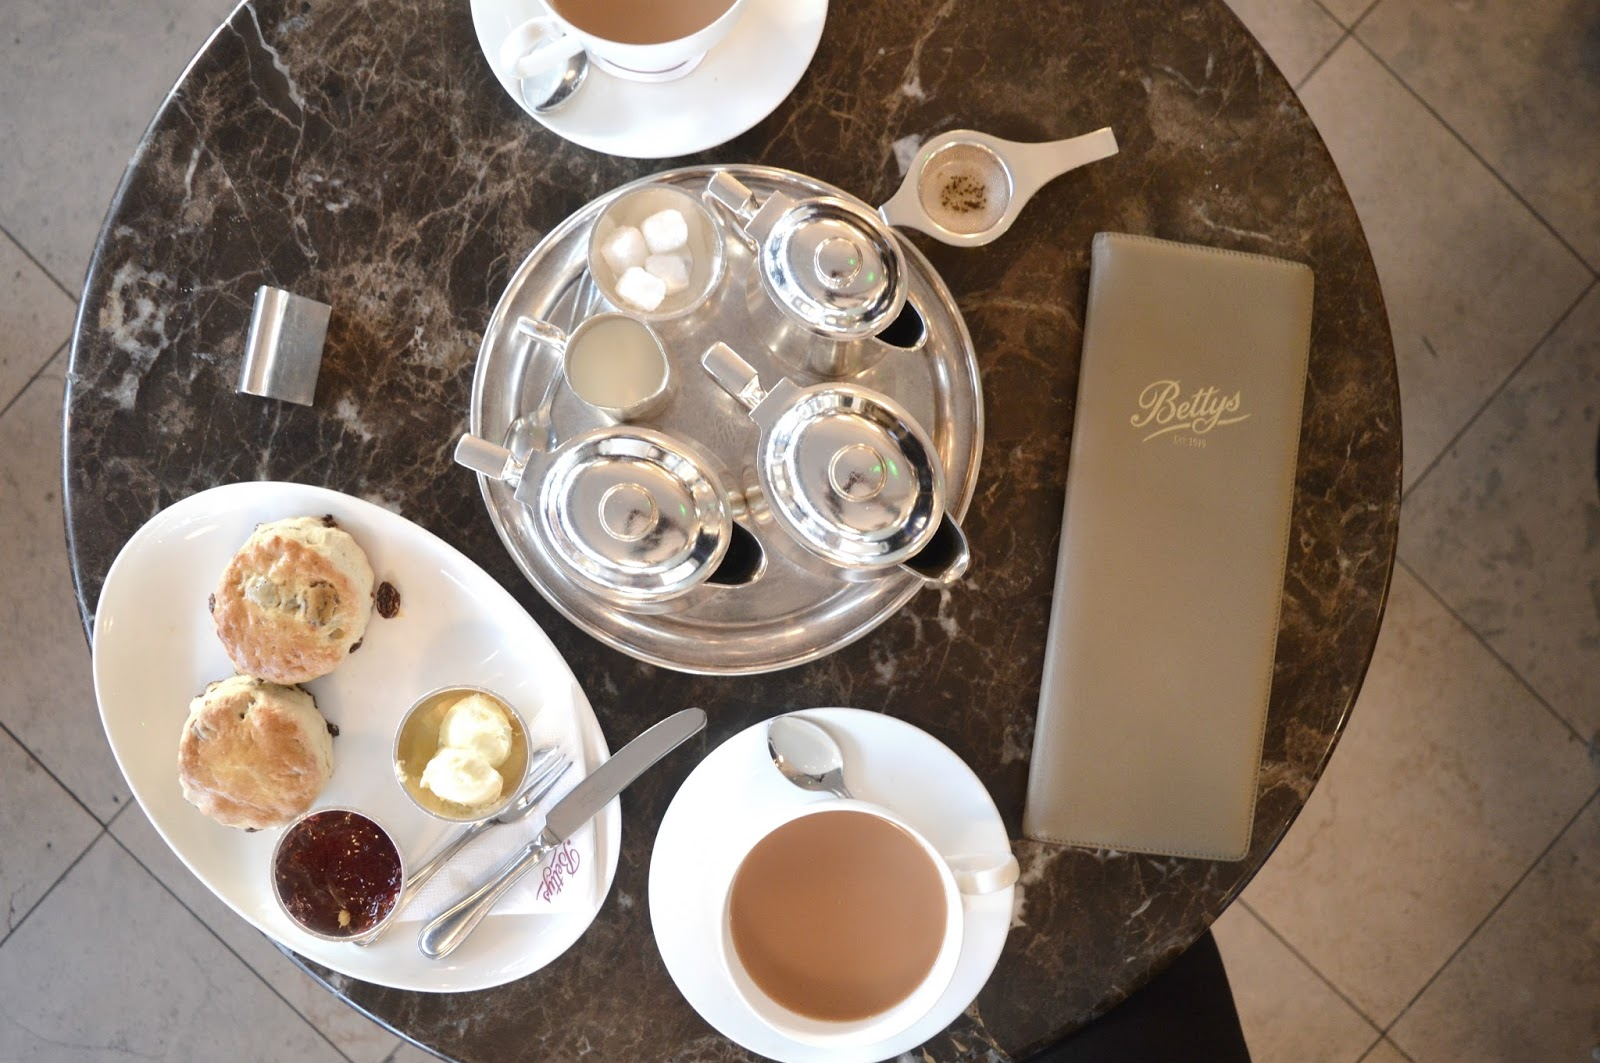 A Weekend in Harrogate - Bettys Tea Room